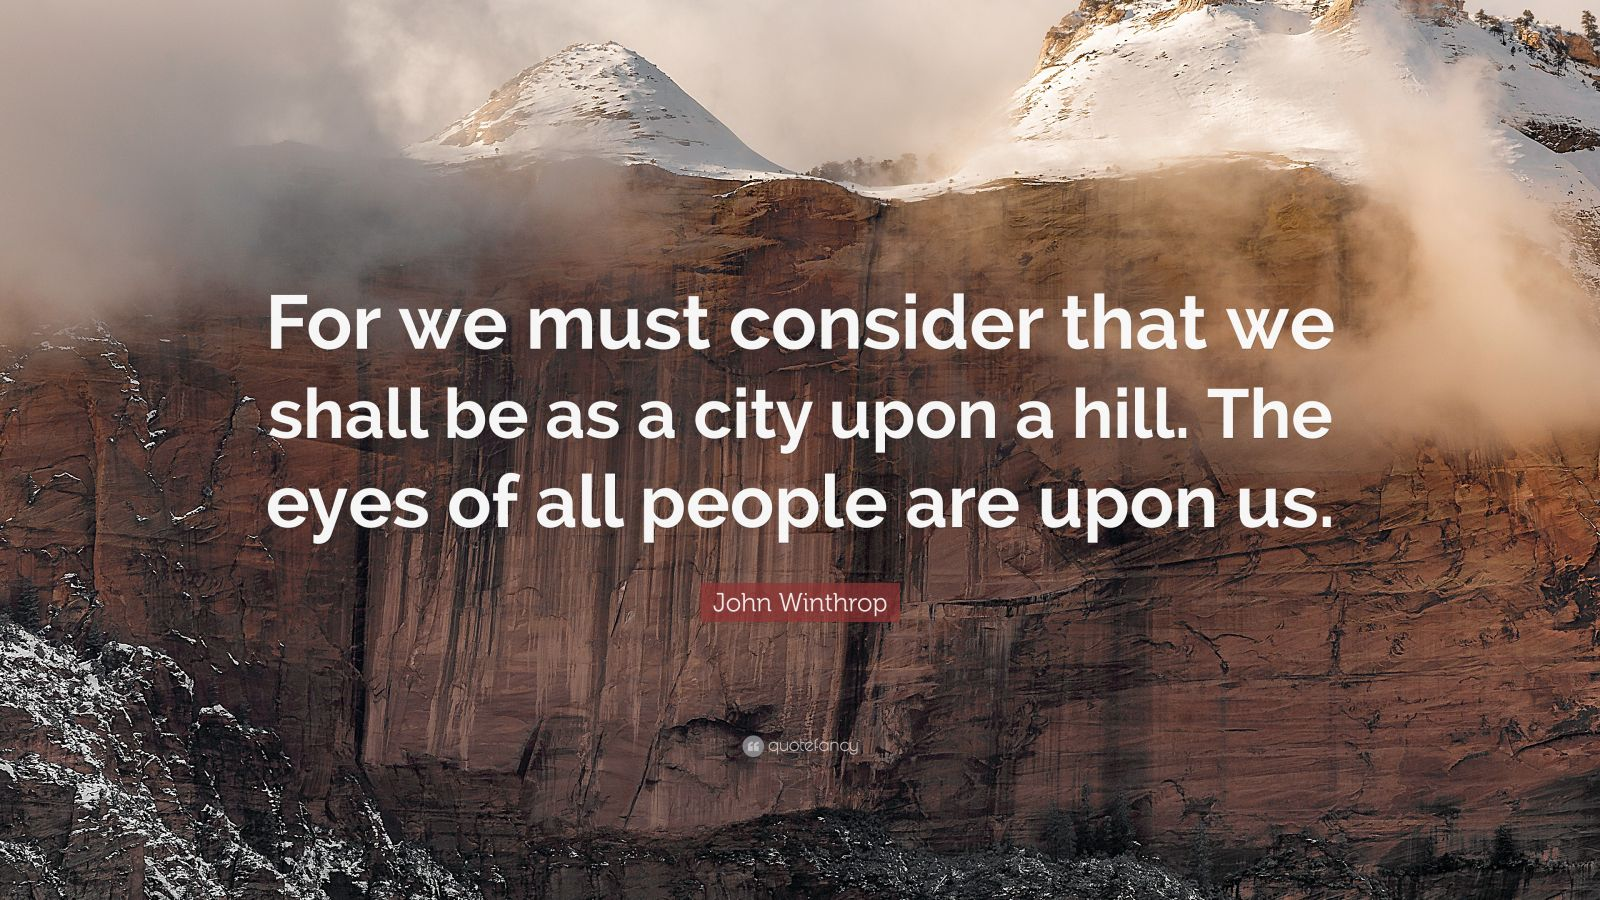 """a city upon a hill by john winthrop essay John winthrop's """"city on a hill"""" john winthrop's """"city on a hill"""" john winthrop's 1630 speech not only contributed an enduring metaphor to american culture, but it also illustrated the puritans' sense of mission and world view."""